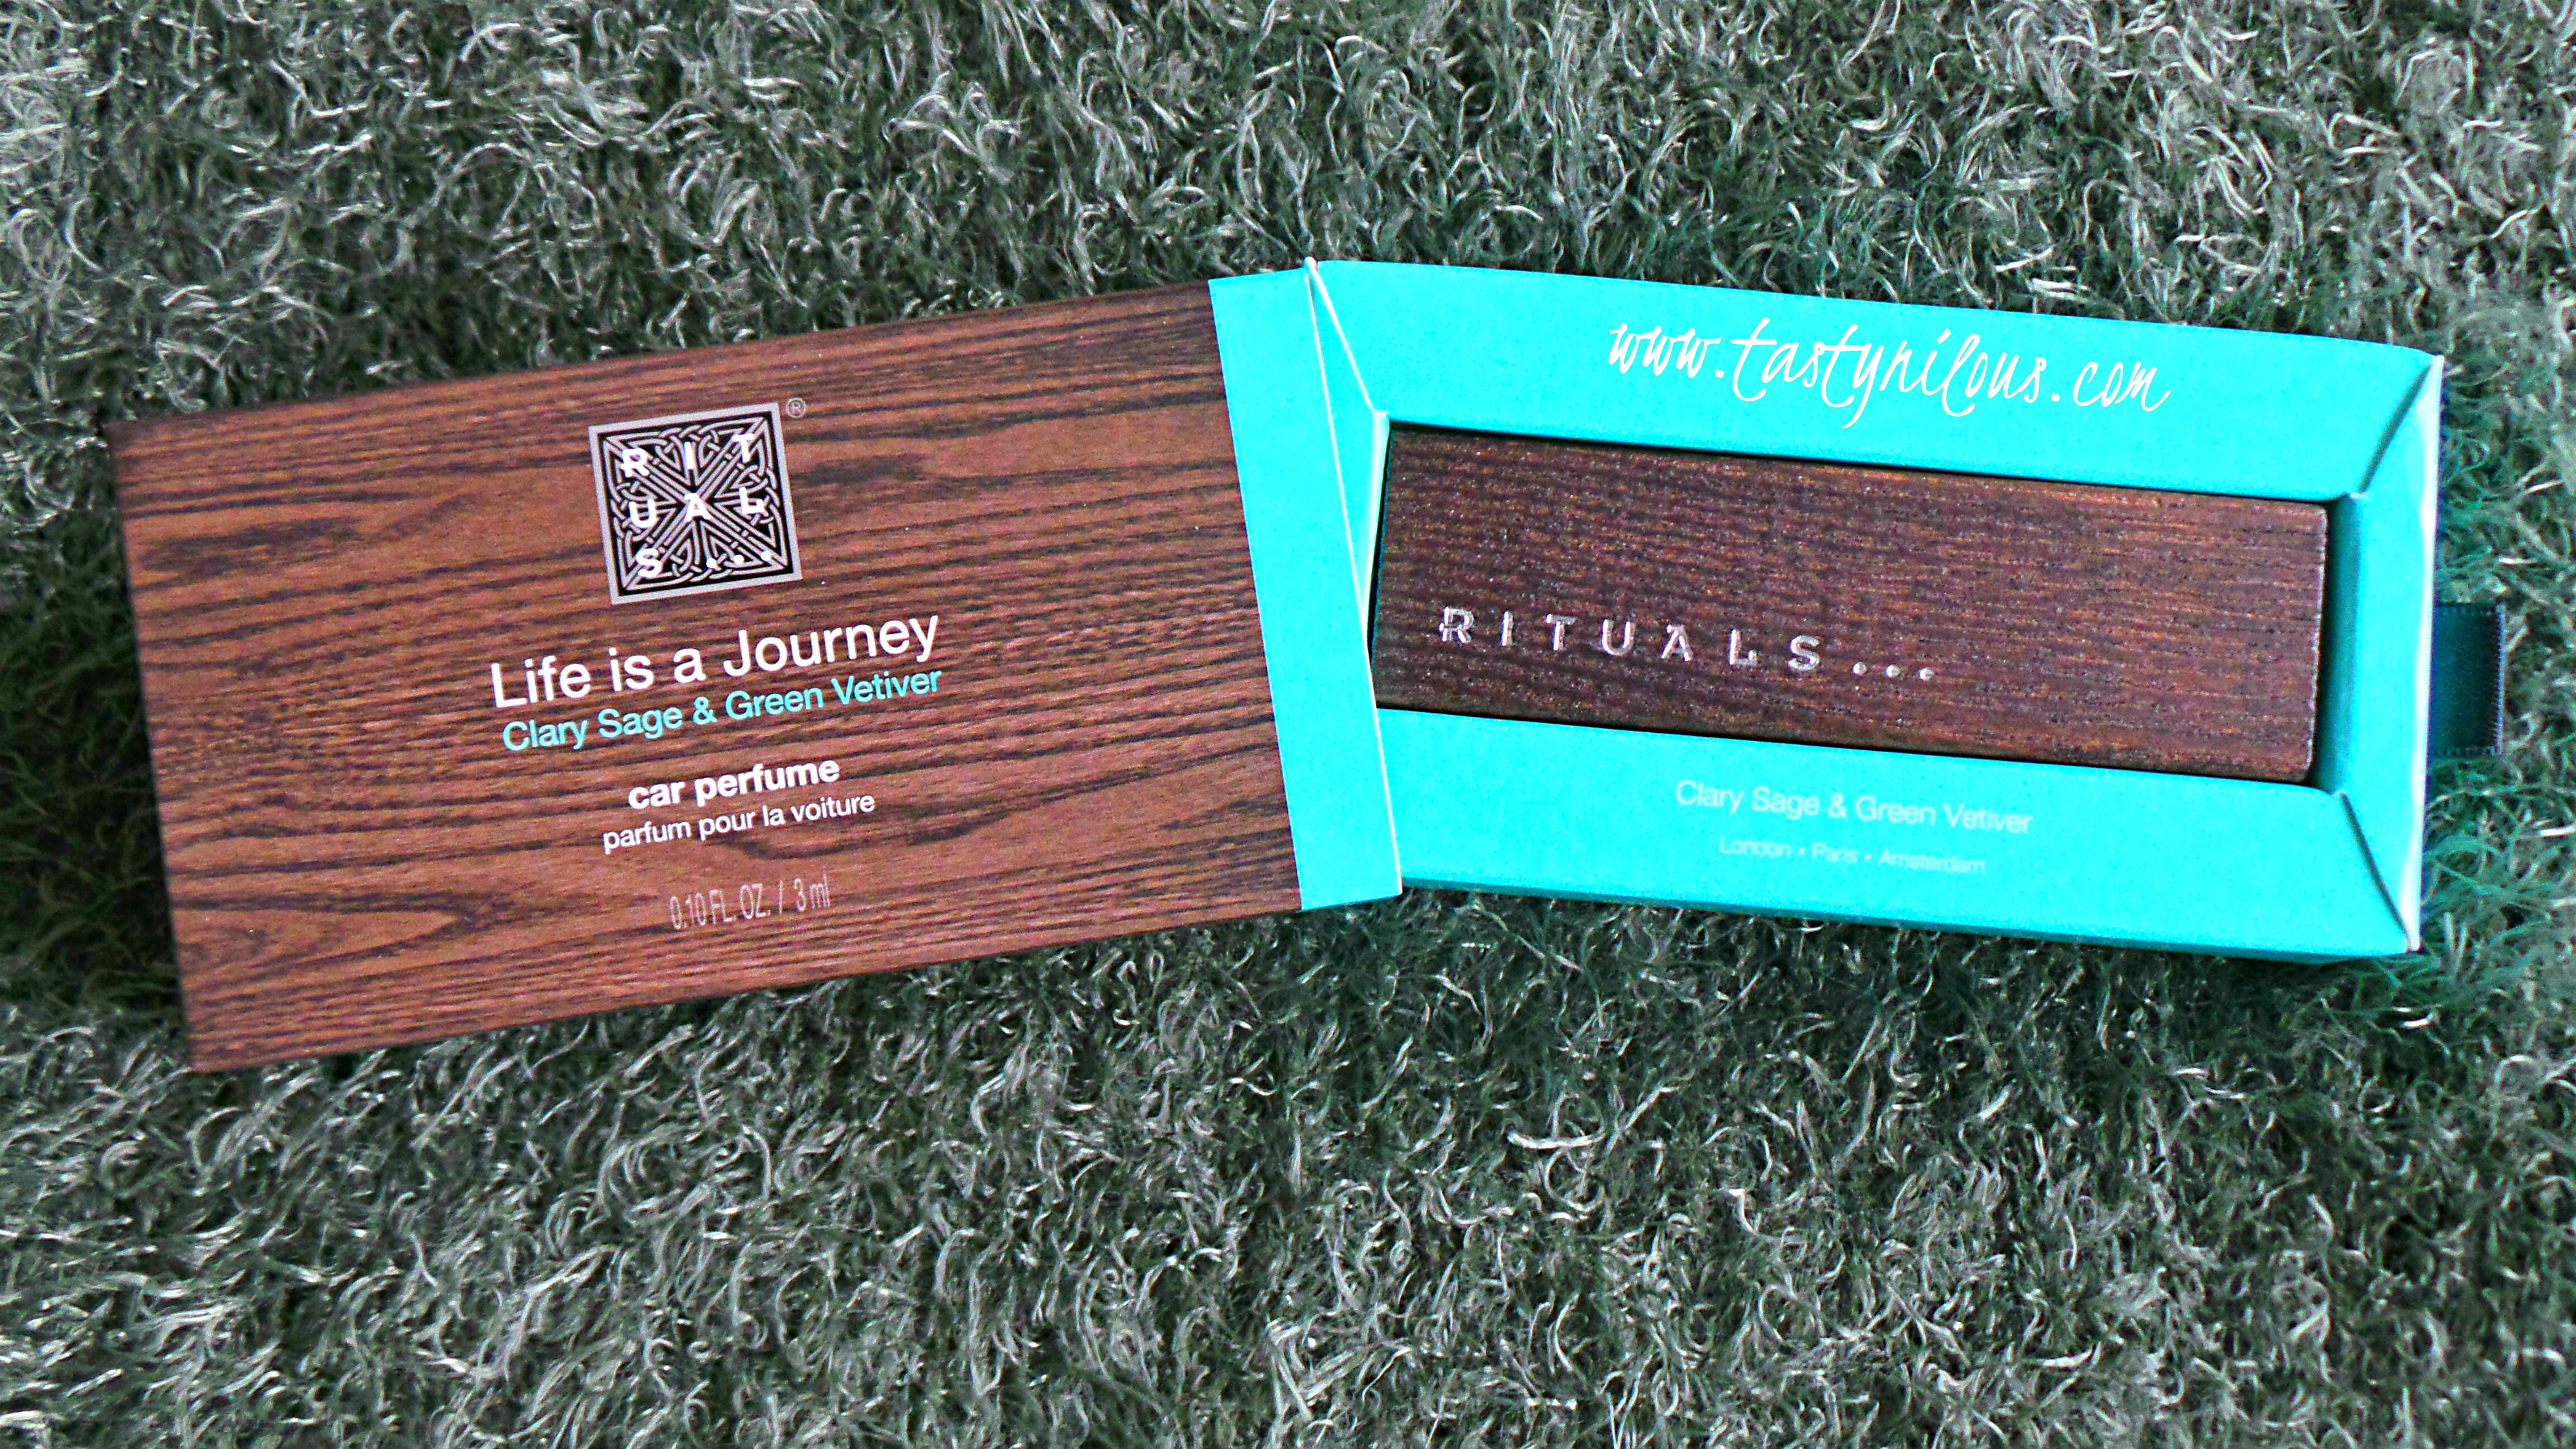 Rituals Geur Auto.Review Rituals Bestelling Winactie Tasty Nilou S